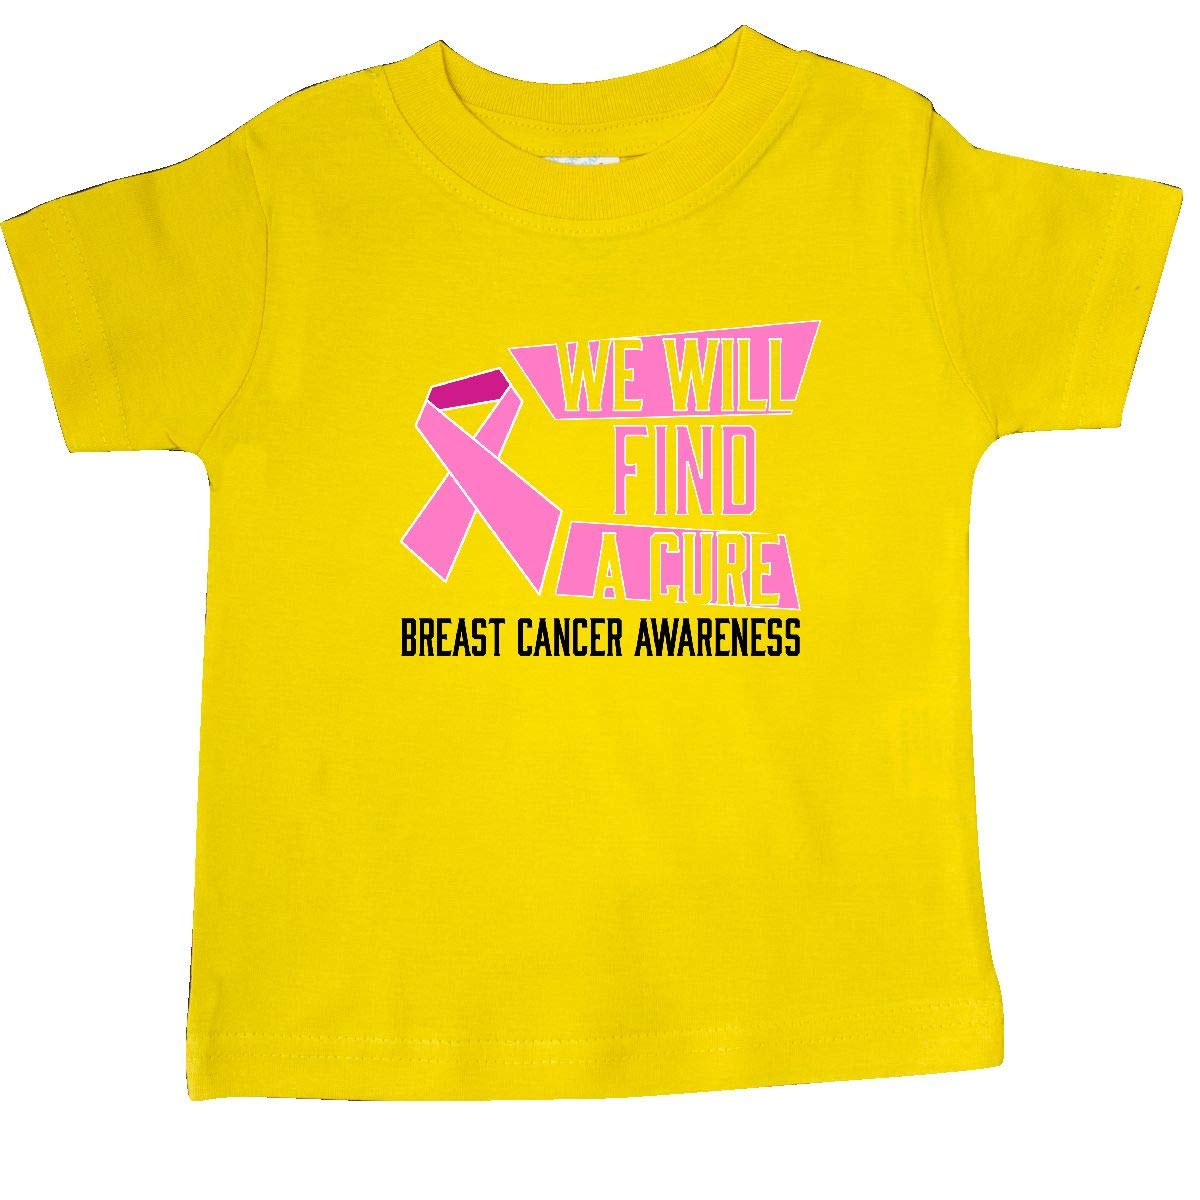 inktastic We Will Find a Cure Breast Cancer Awareness Baby T-Shirt